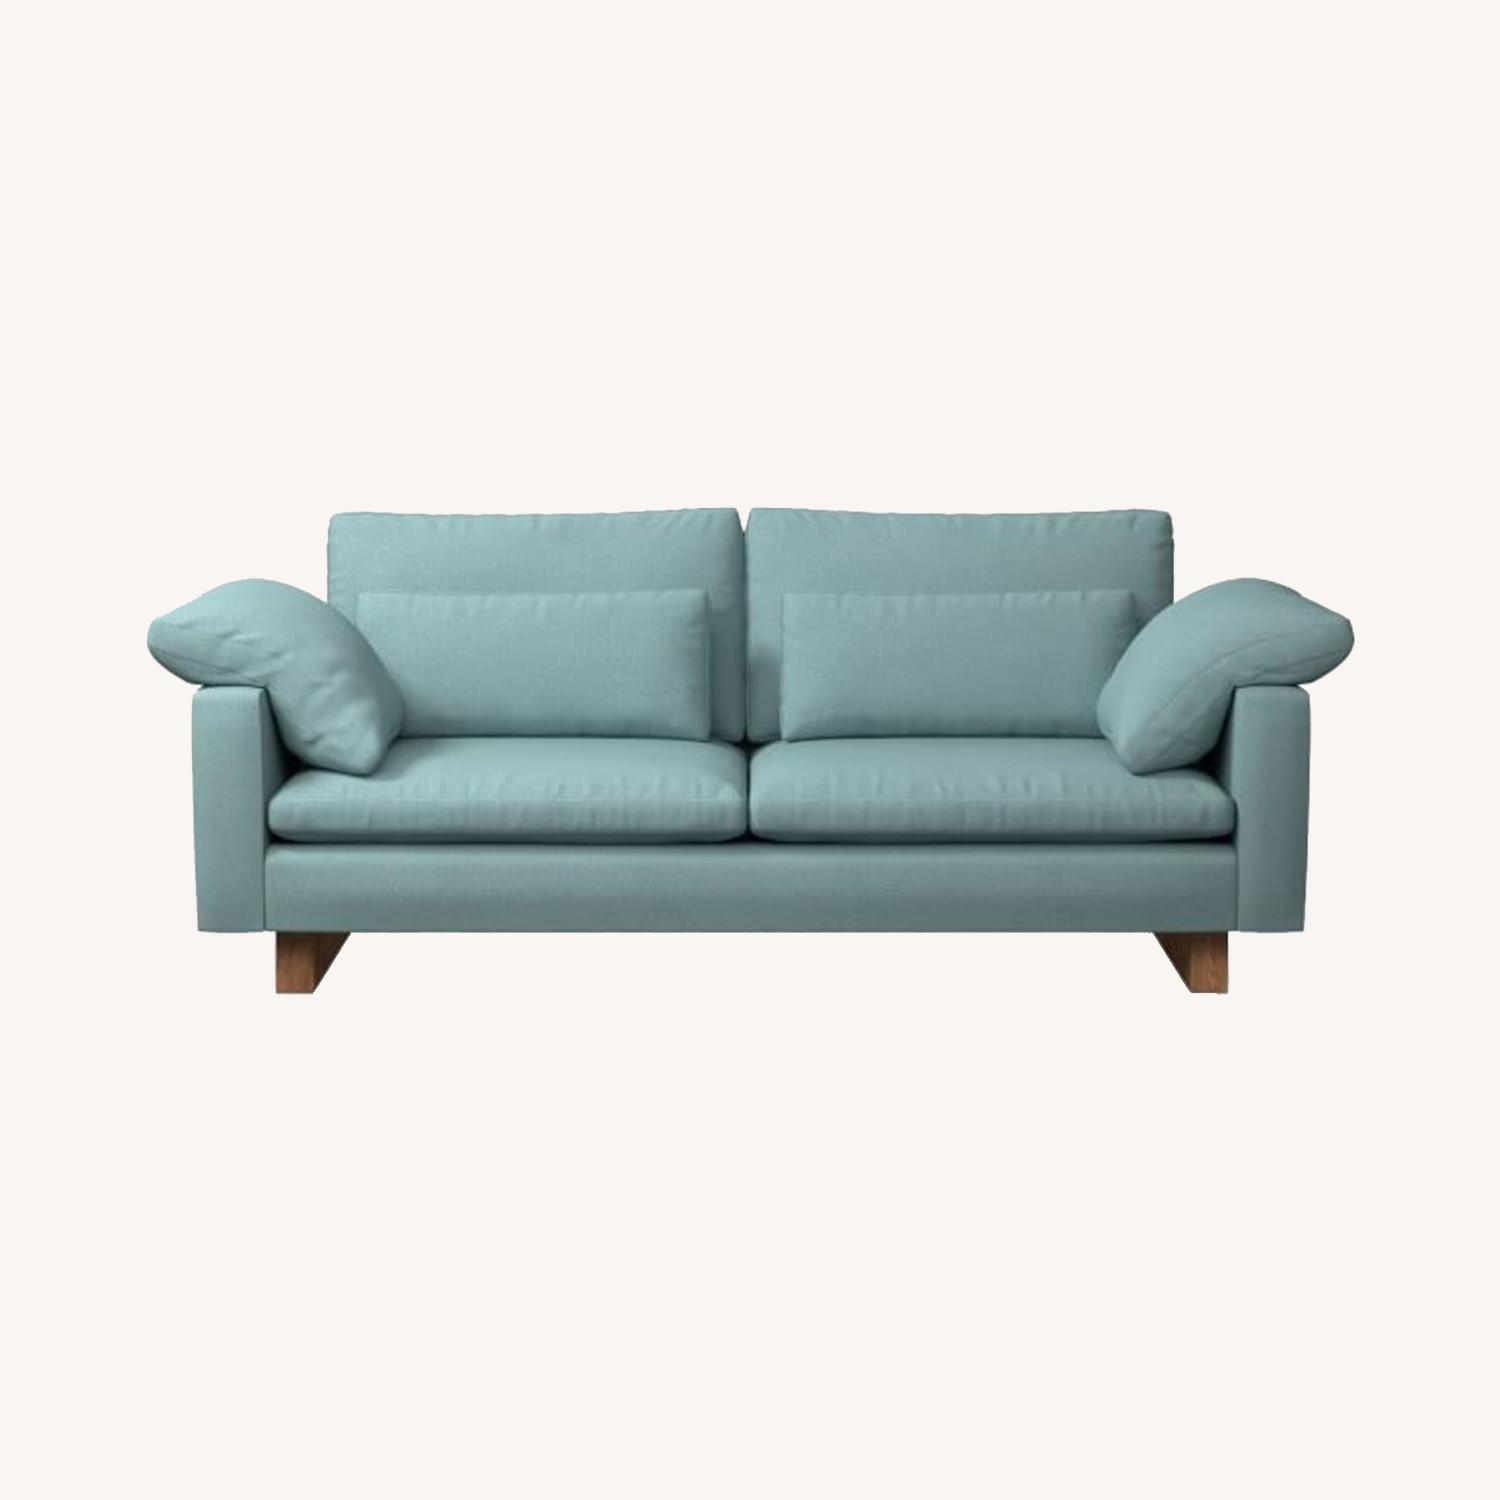 West Elm Harmony Sofa - image-0